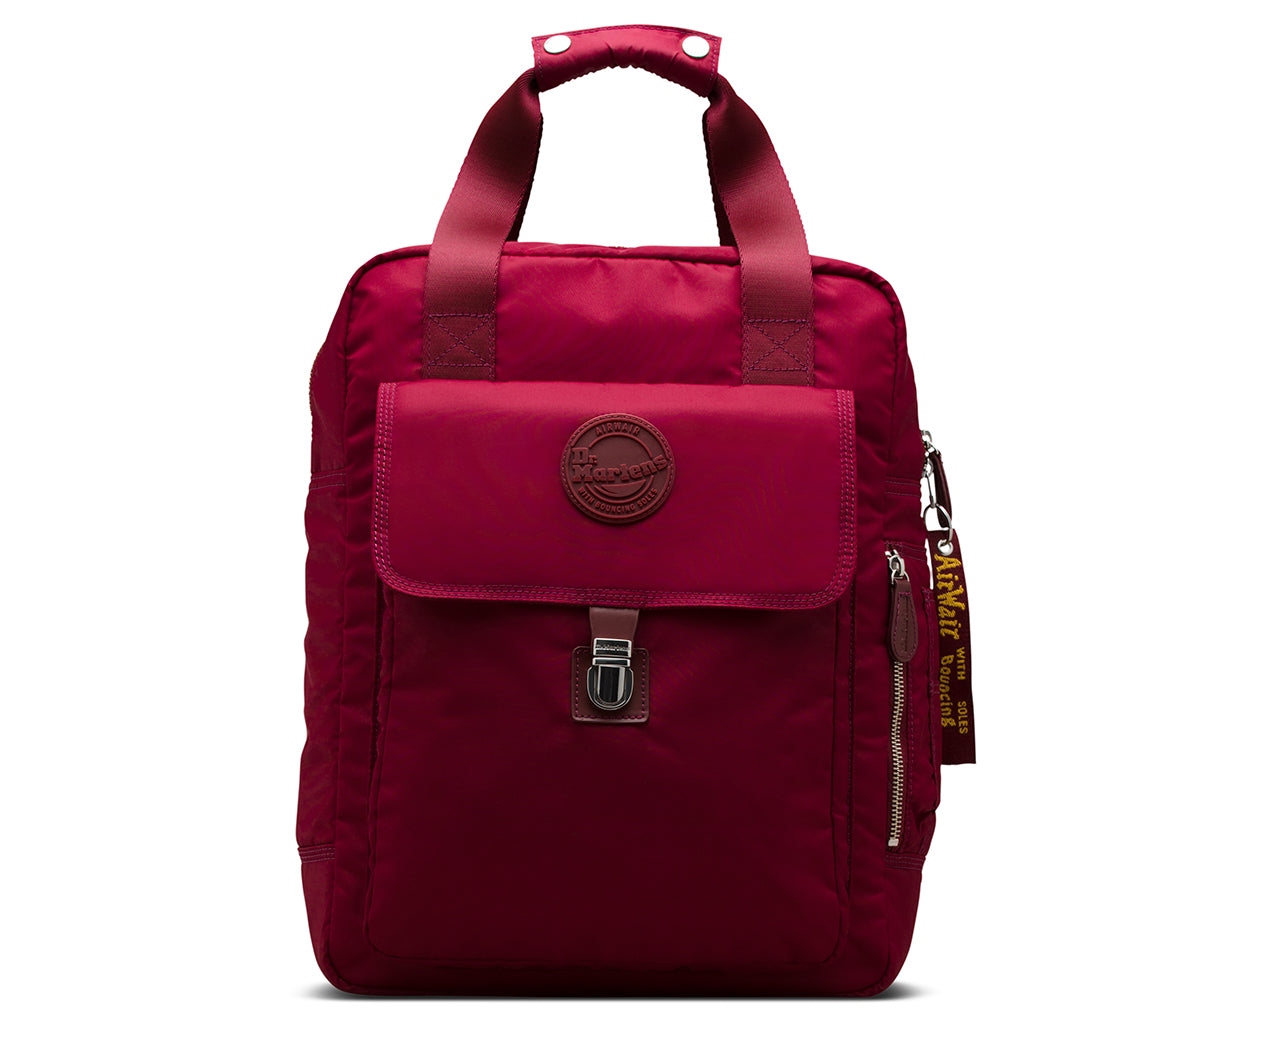 87897fa47b6f Dr Martens cherry red large nylon backpack one size - Top brand shoes